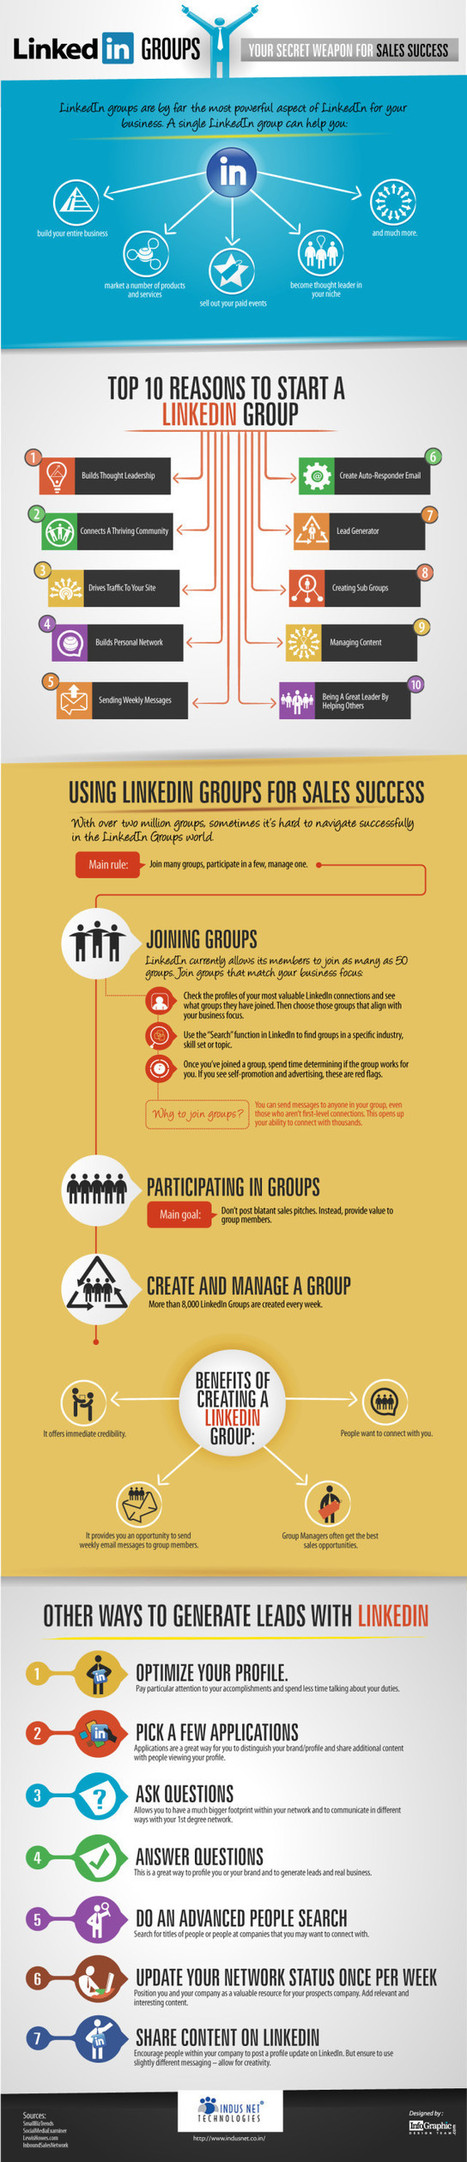 Infographic: LinkedIn Groups for Sales Success | Startups | Scoop.it